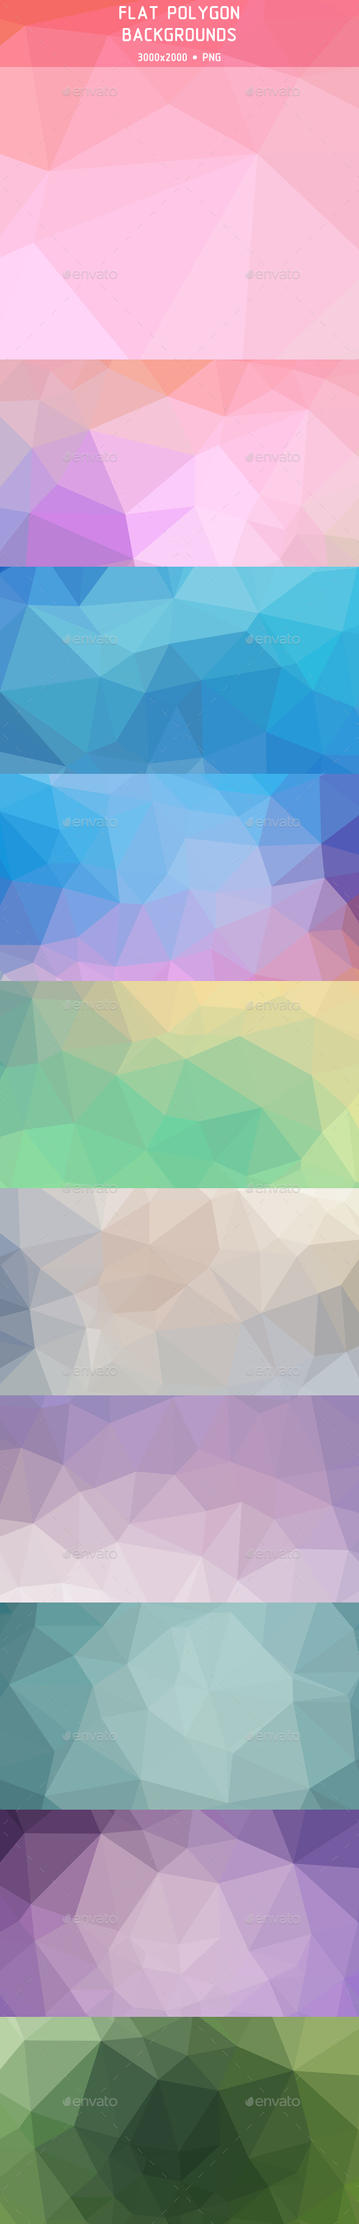 Flat Polygon Backgrounds (Preview) by Cooltype-GR